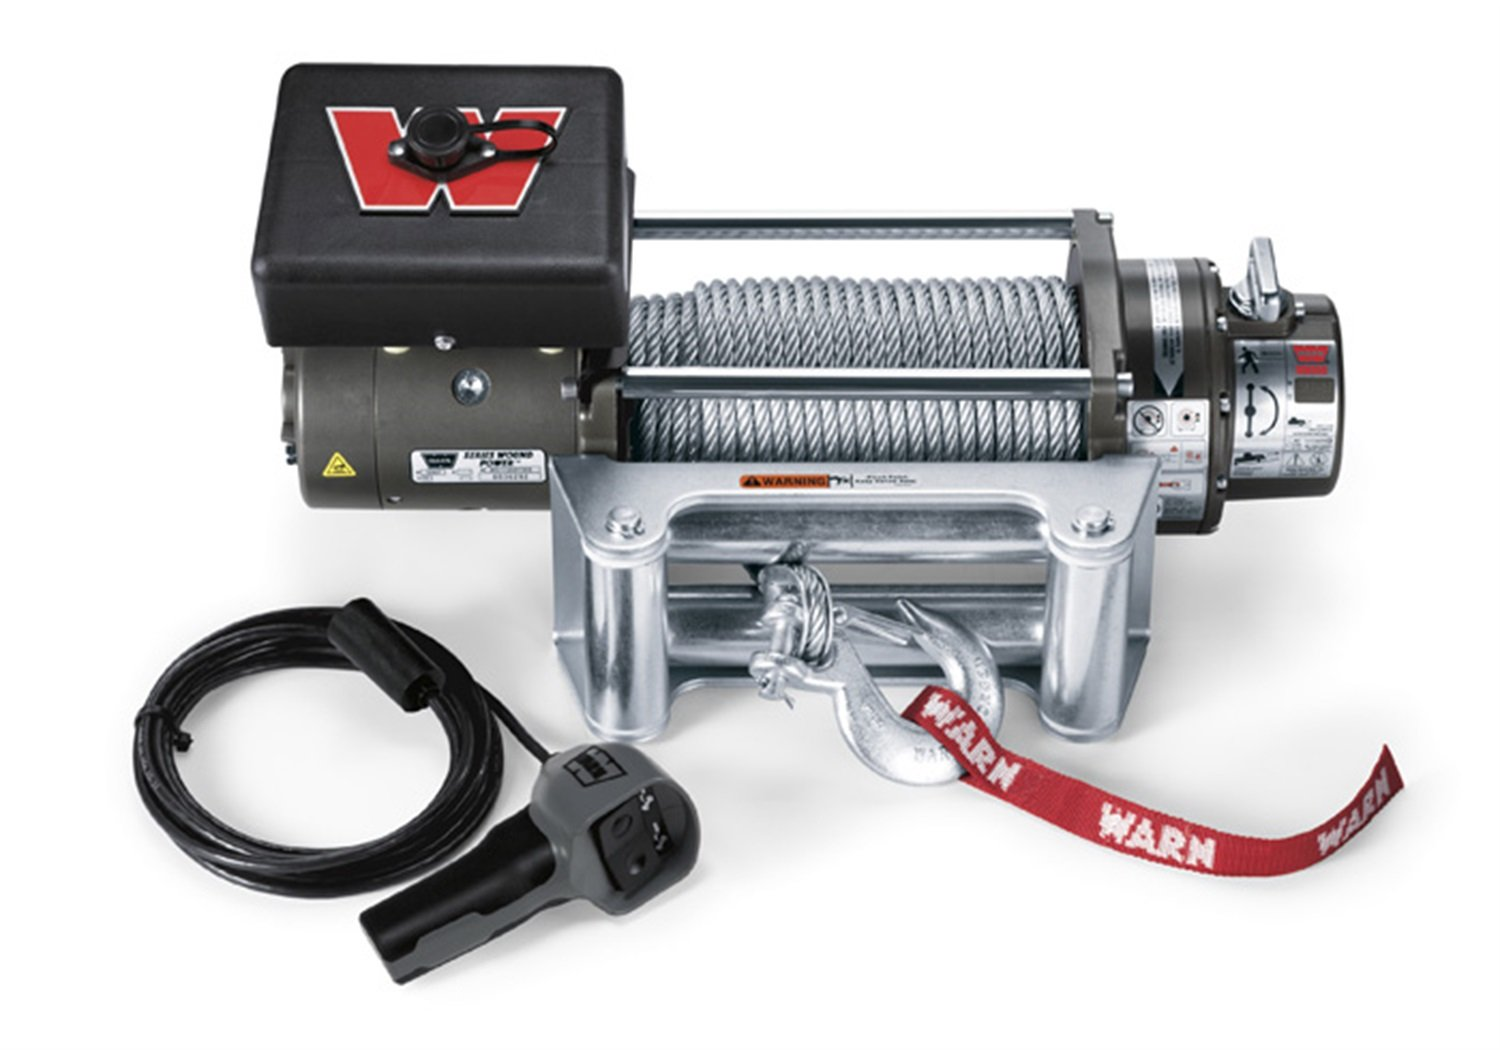 "WARN 26502 M8000 Series Electric 12V Winch with Steel Cable Wire Rope: 5/16"" Diameter x 100' Length, 4 Ton (8,000 lb) Pulling Capacity"